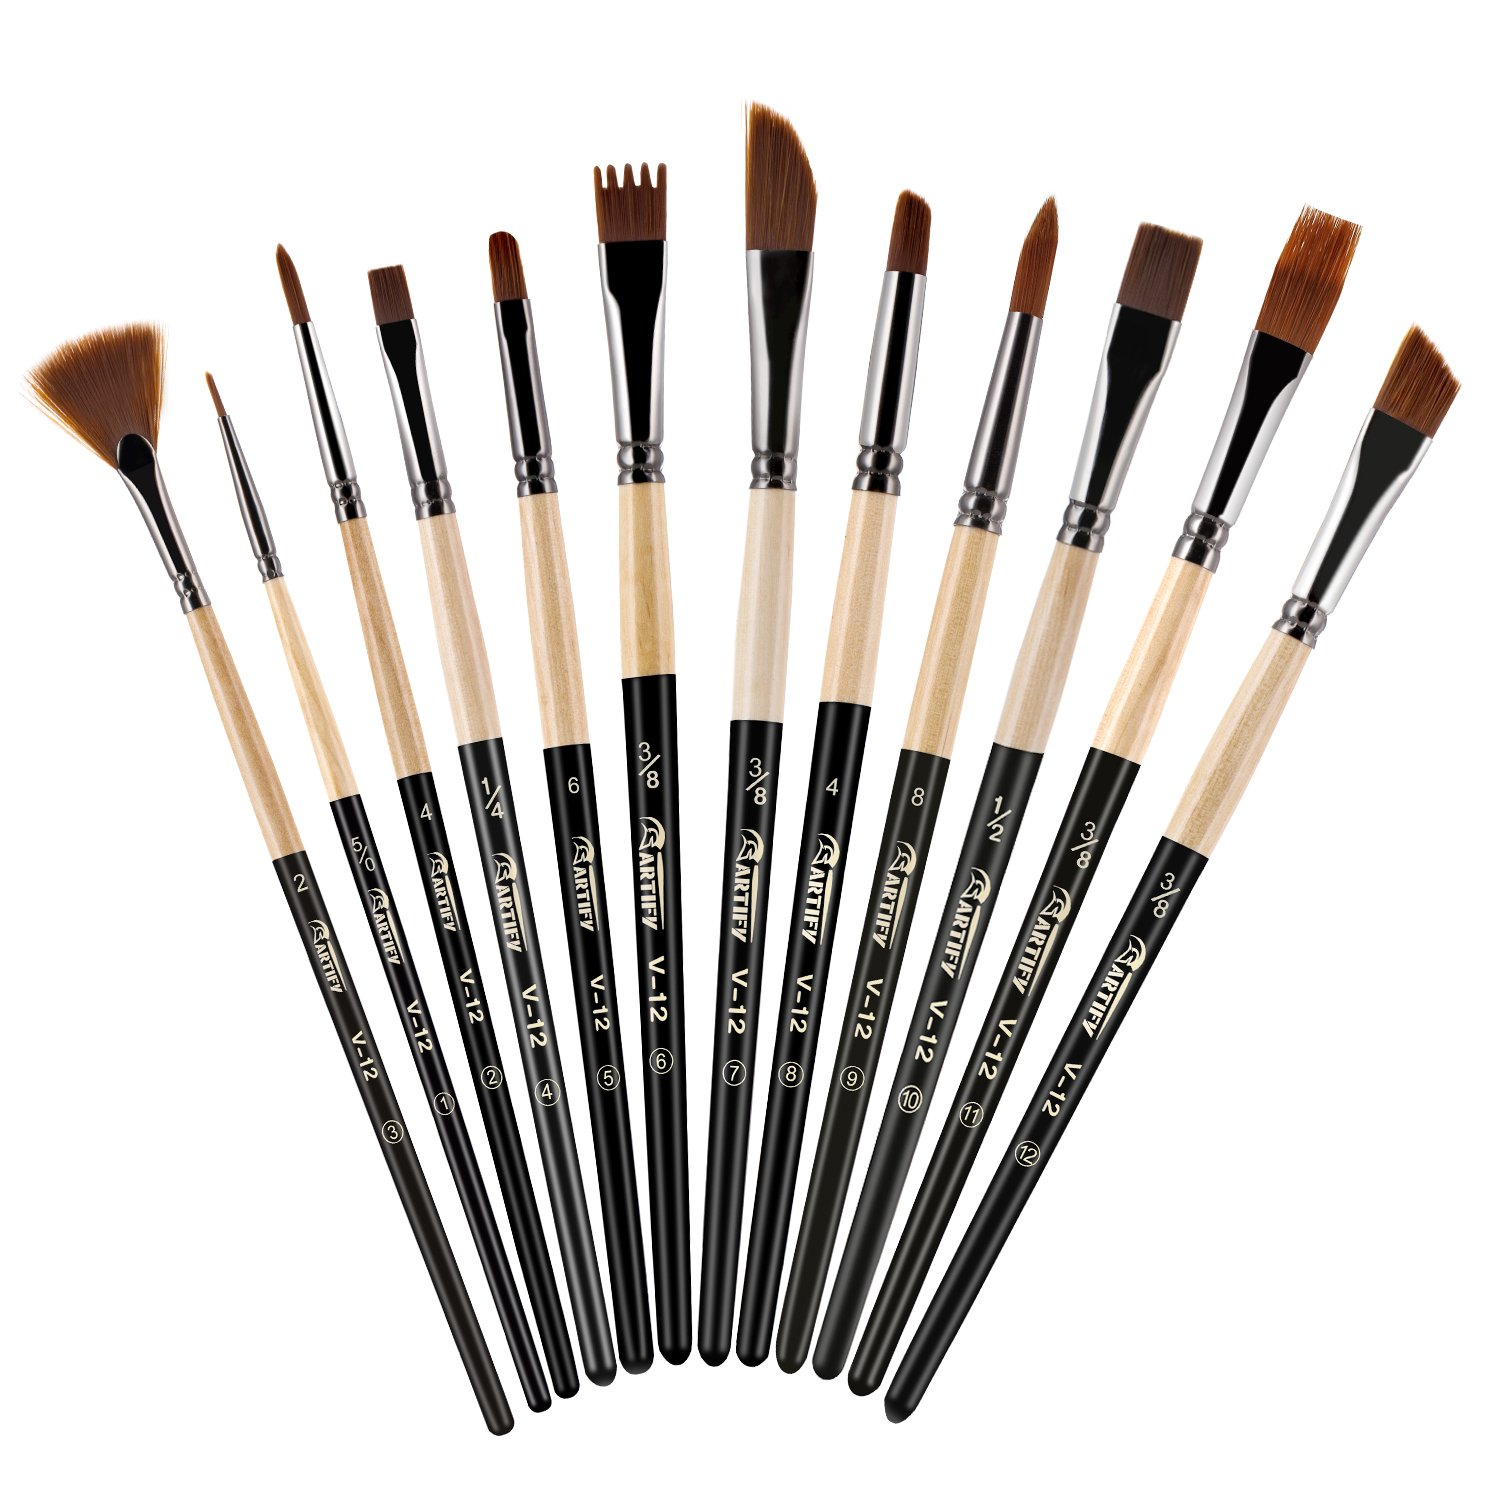 Artify 2018 New 12 Pcs Paint Brush Set with Amber Nylon Hairs Perfect for Acrylic, Oil, Watercolor, Gouache and Face Painting Artify Art Supplies